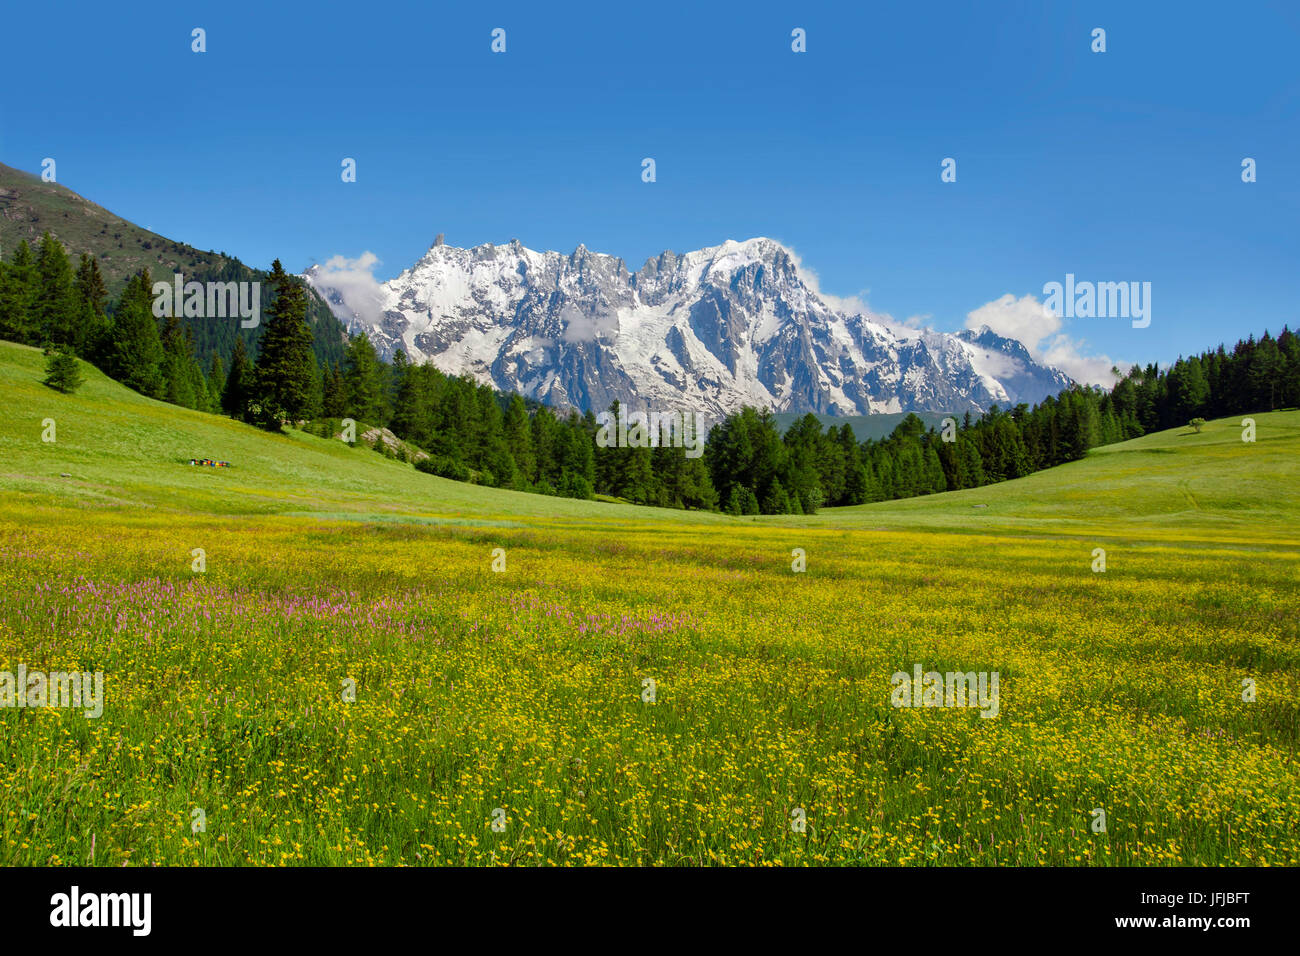 Mont Blanc (Monte Bianco) from Petosan, between San Carlo Pass and la Thuile, Aosta Valley, Italy, Europe - Stock Image